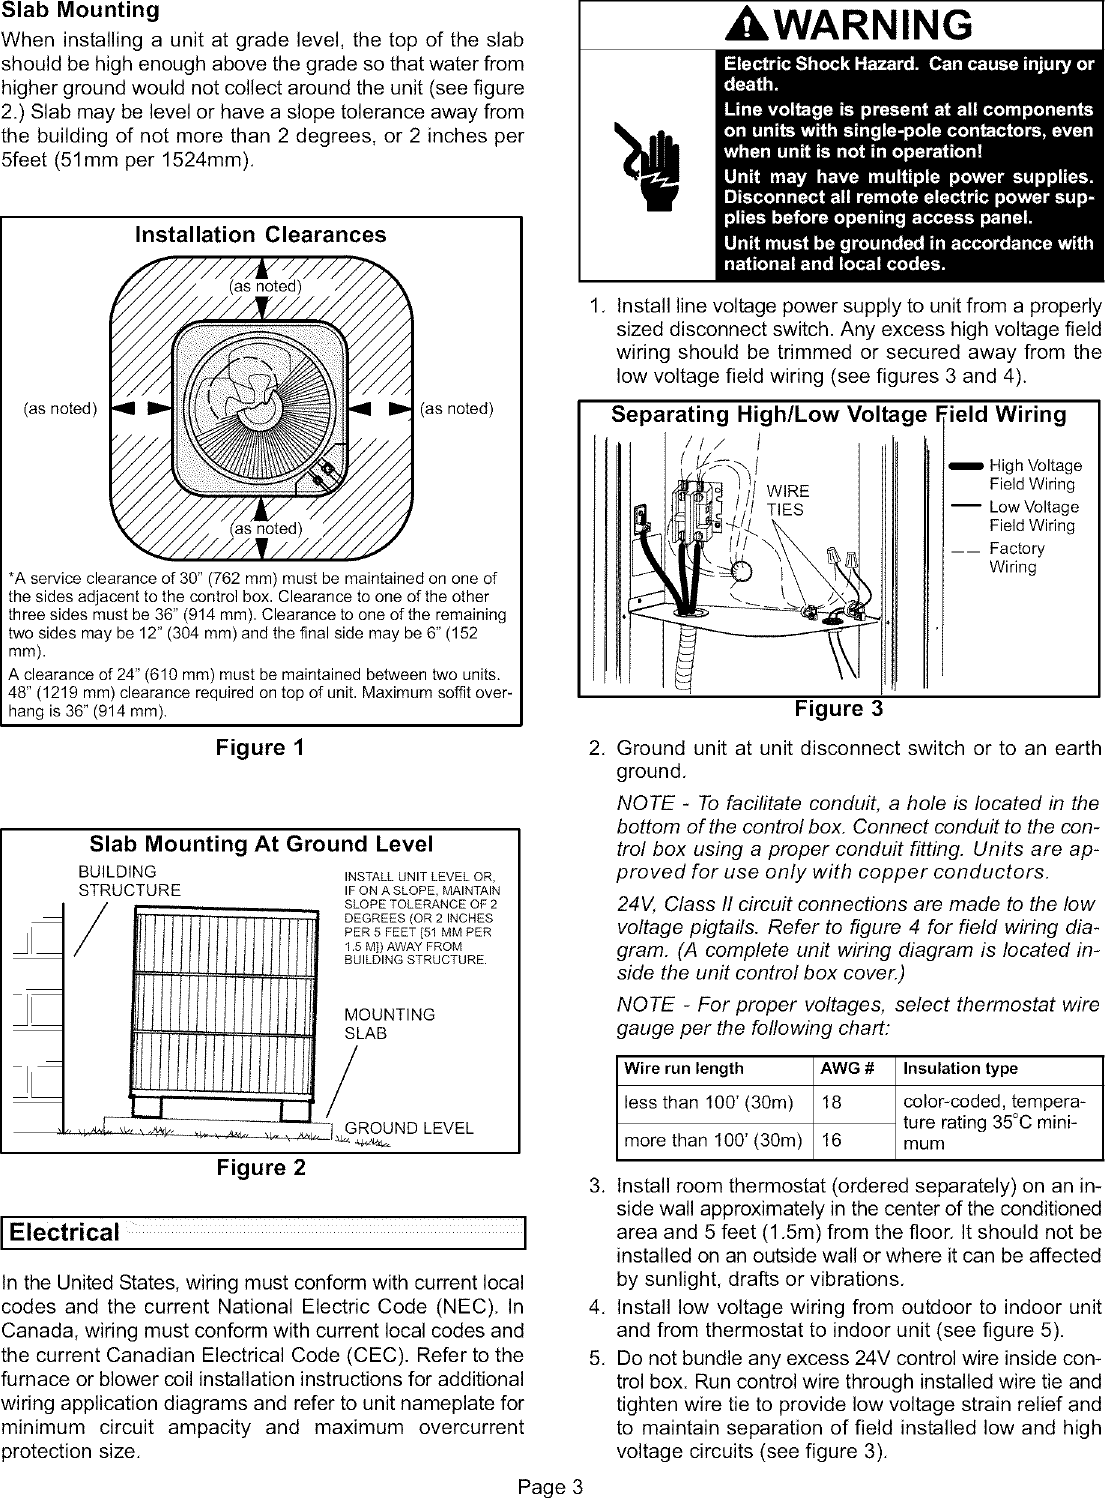 Lennox Air Conditioner Heat Pumpoutside Unit Manual L0805477 Low Voltage Wiring Guide Page 3 Of 12